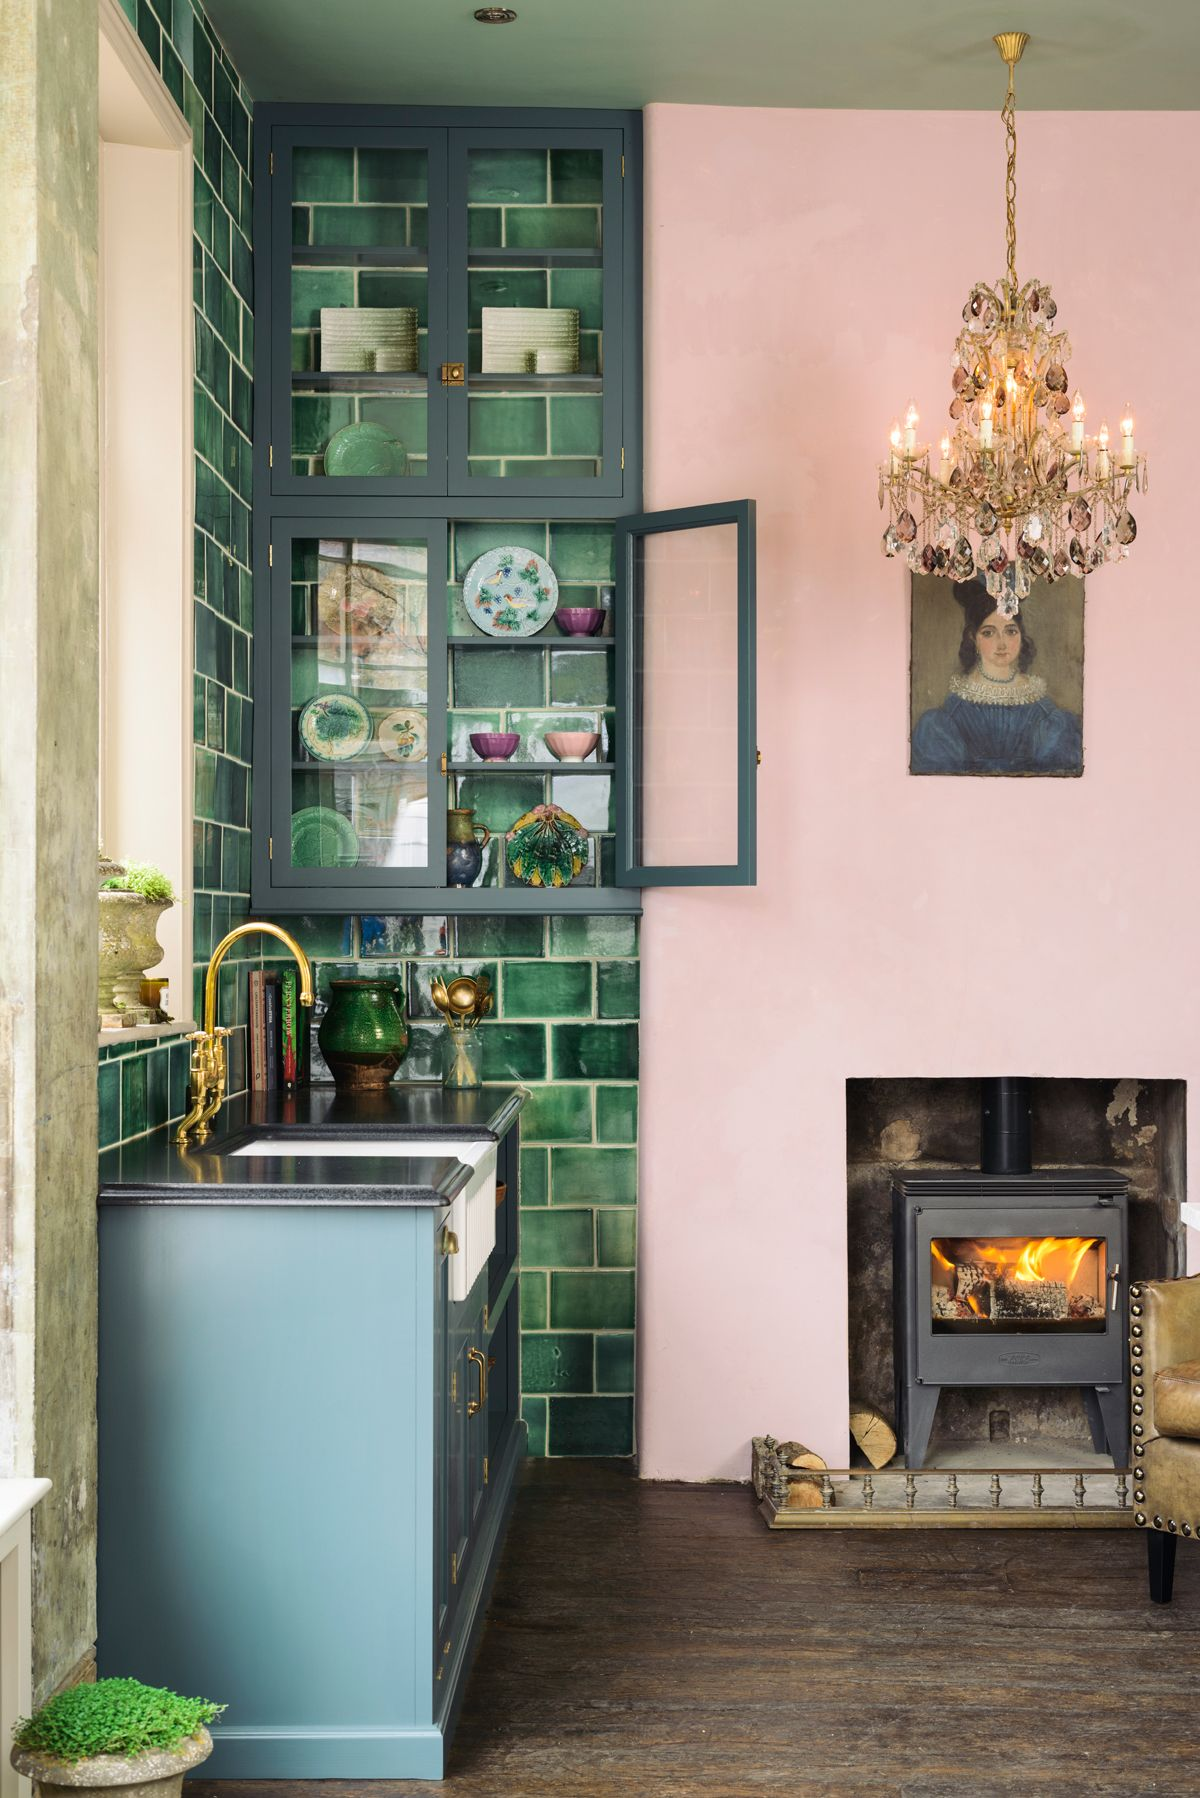 a pink green kitchen showroom cupboard and greyish blue